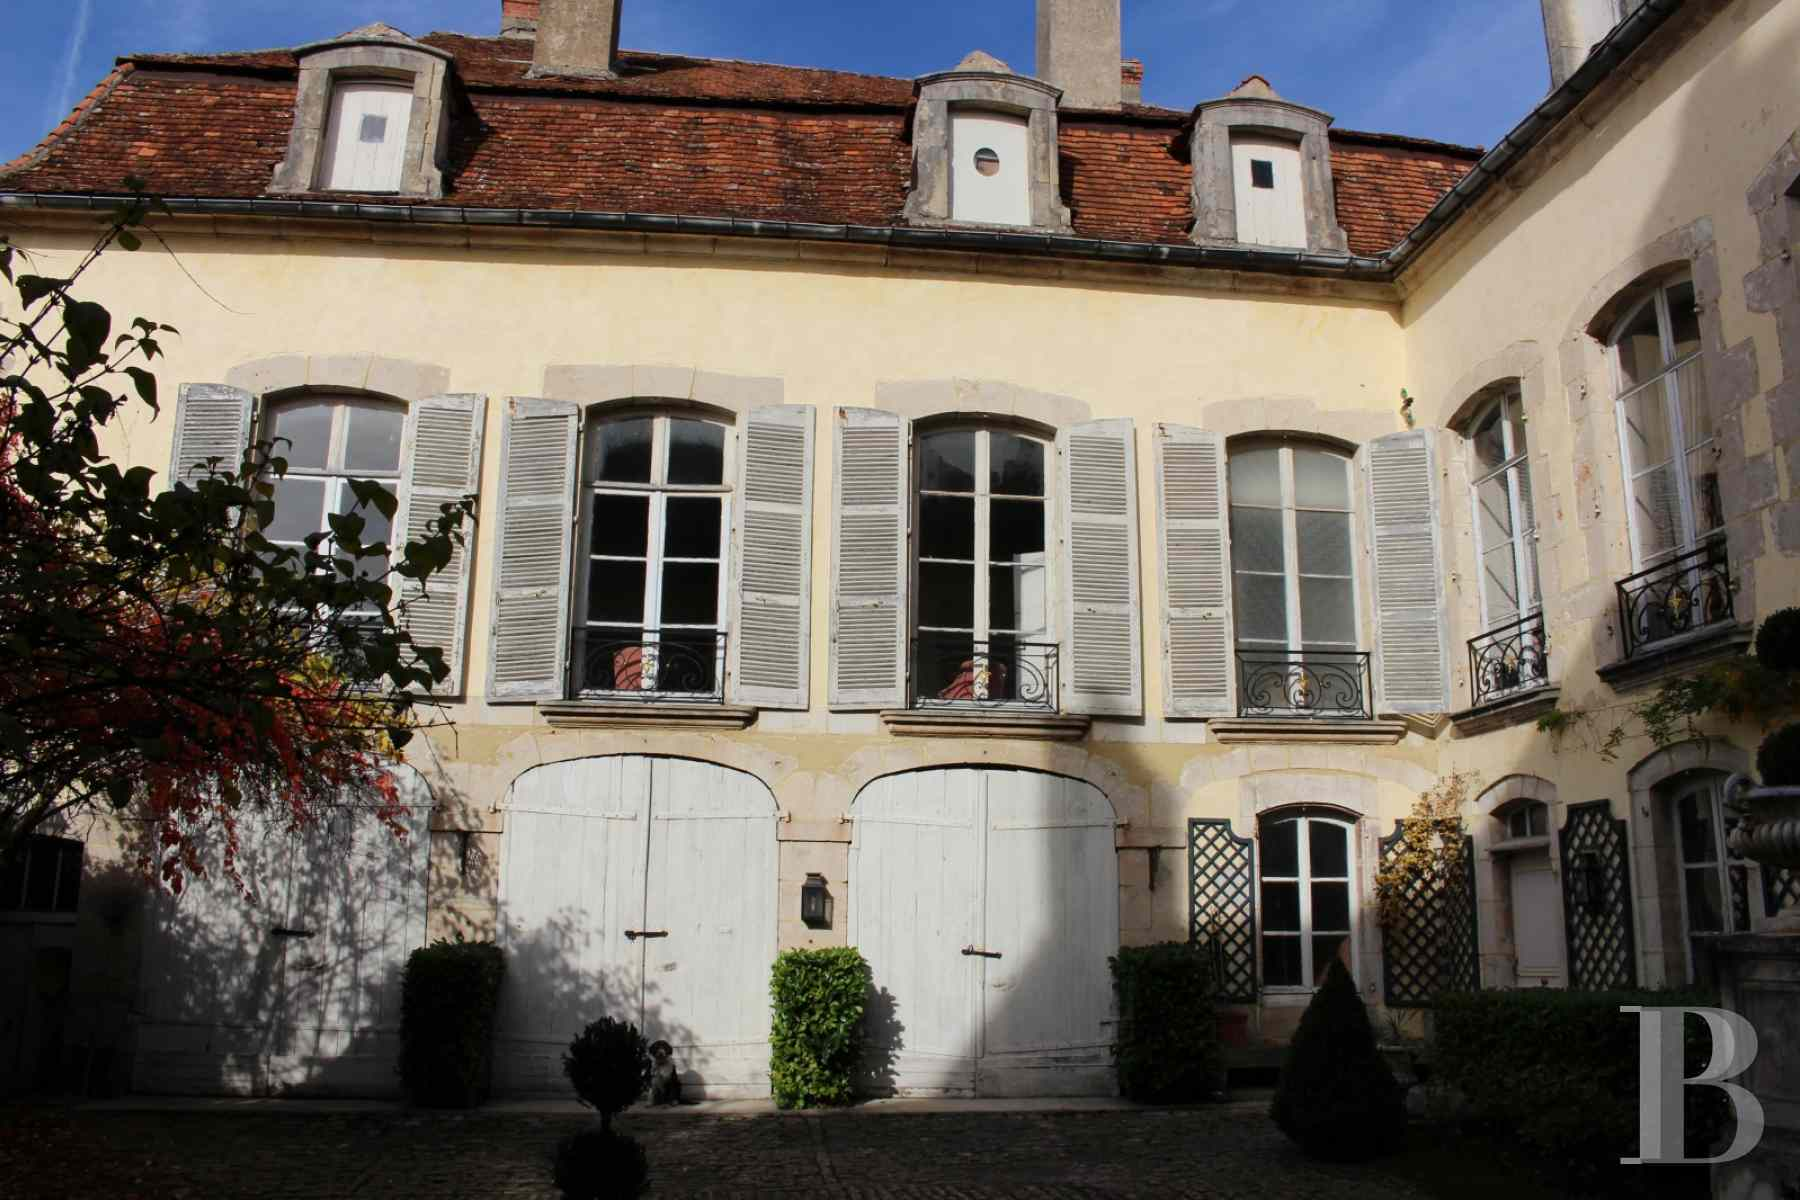 mansion houses for sale France burgundy 18th century - 4 zoom